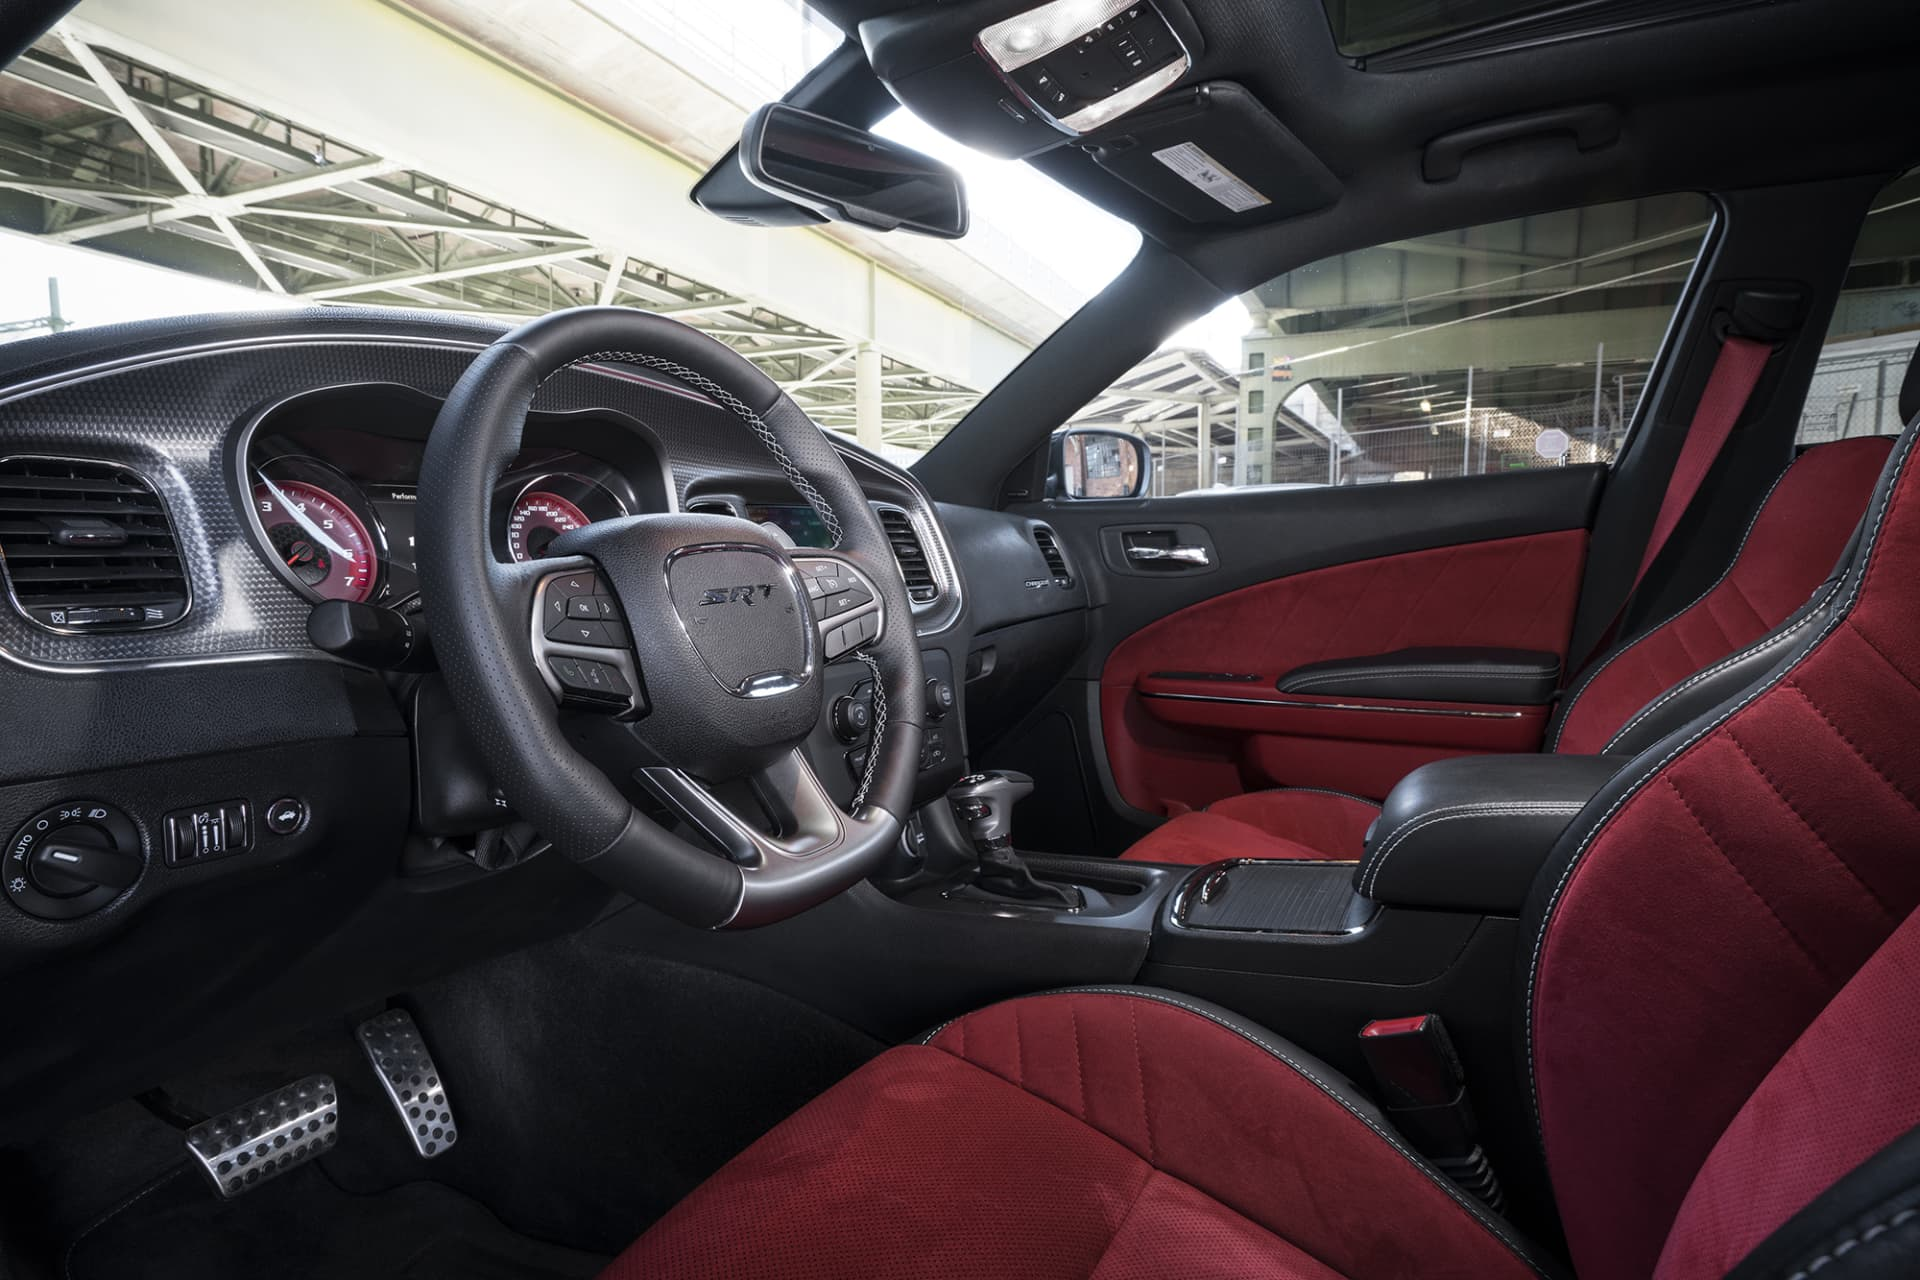 Despite the snazzy Alcantara-interior in red, the quality does not quite match many German competitors. But you're seated very comfortably and when the pedal hits the metal and the power is released, you quickly forget the details of the interior.